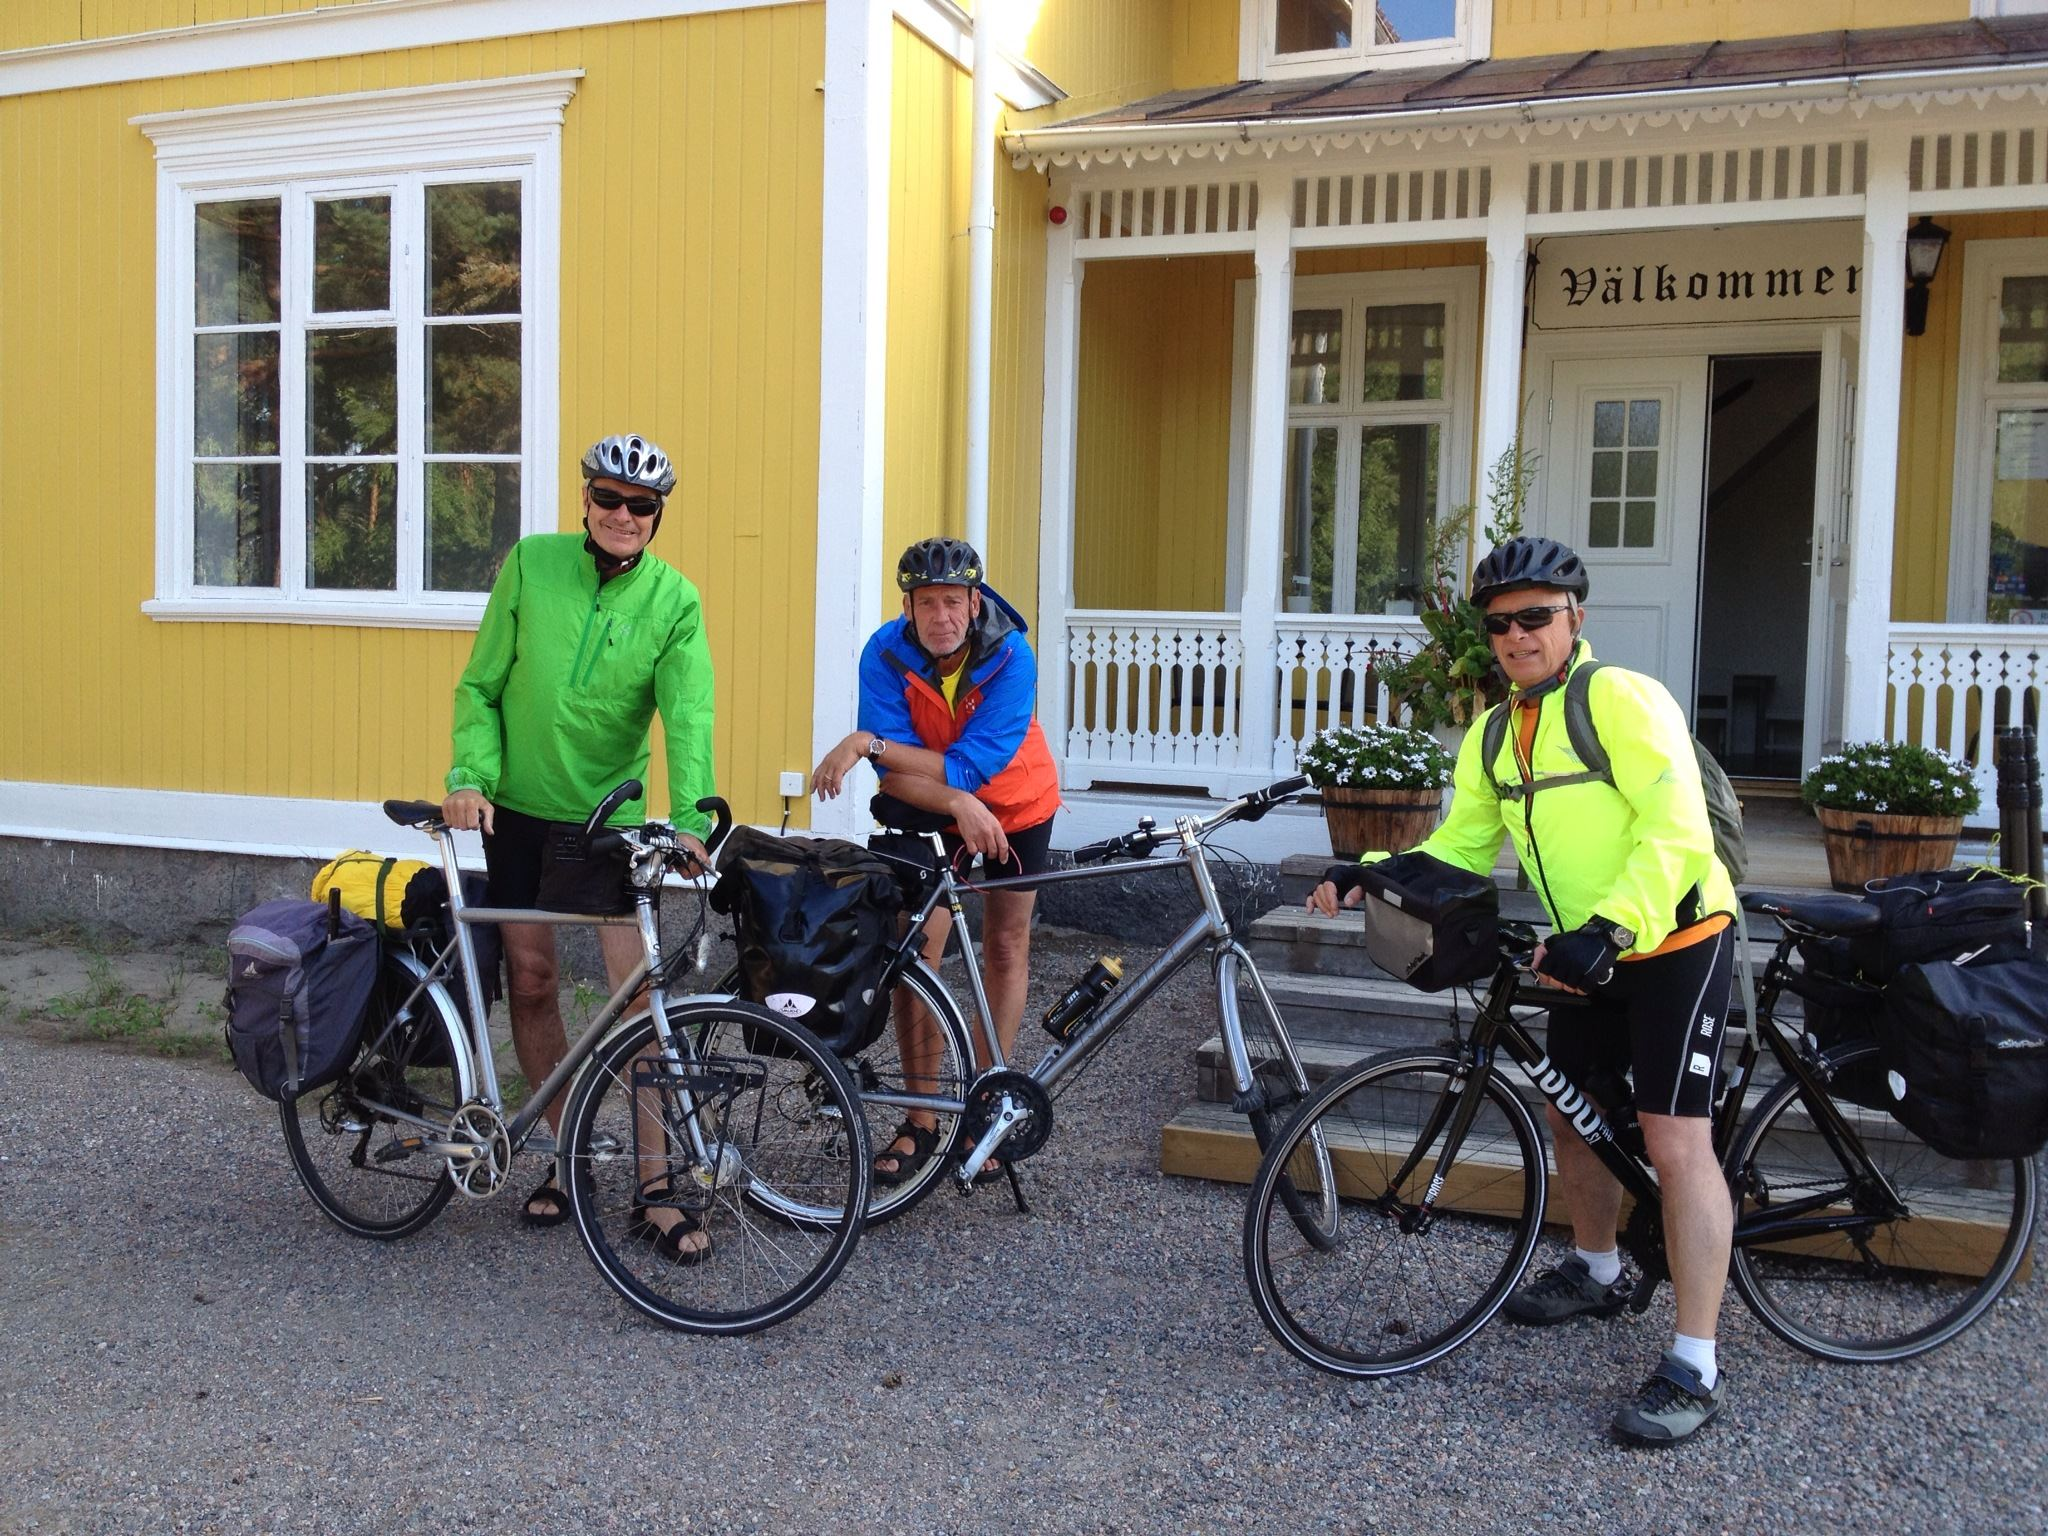 Cycling from Bergby – Stay at Hedenstugan B&B Hotel